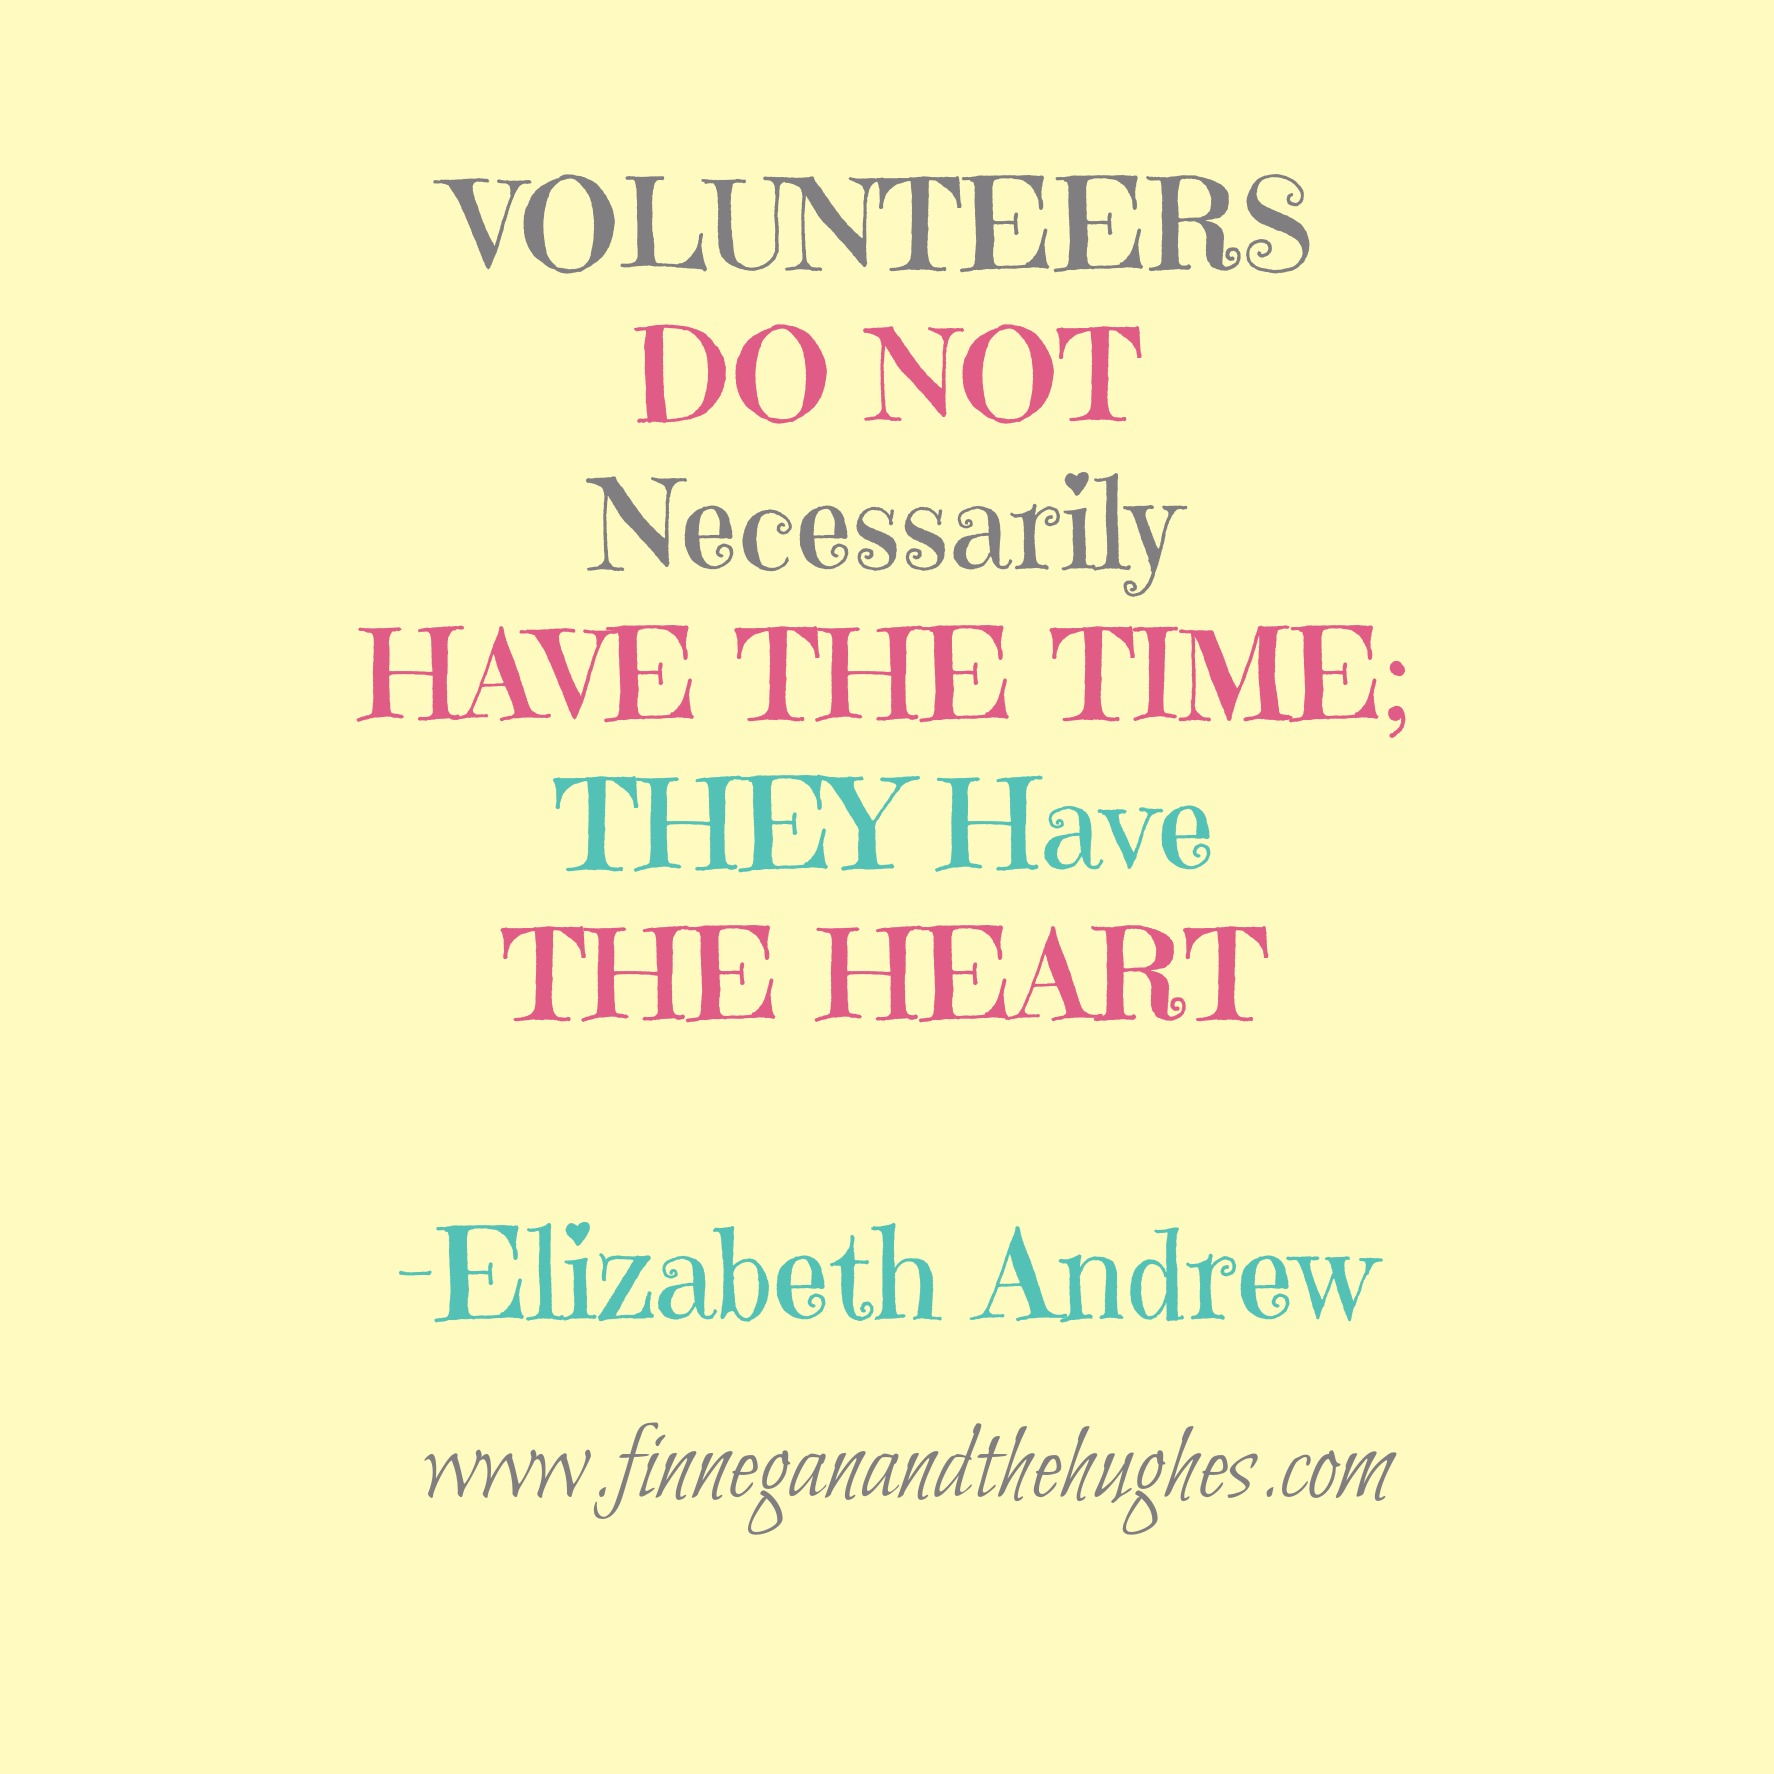 Volunteering: Thoughtful Thursday Link-Up